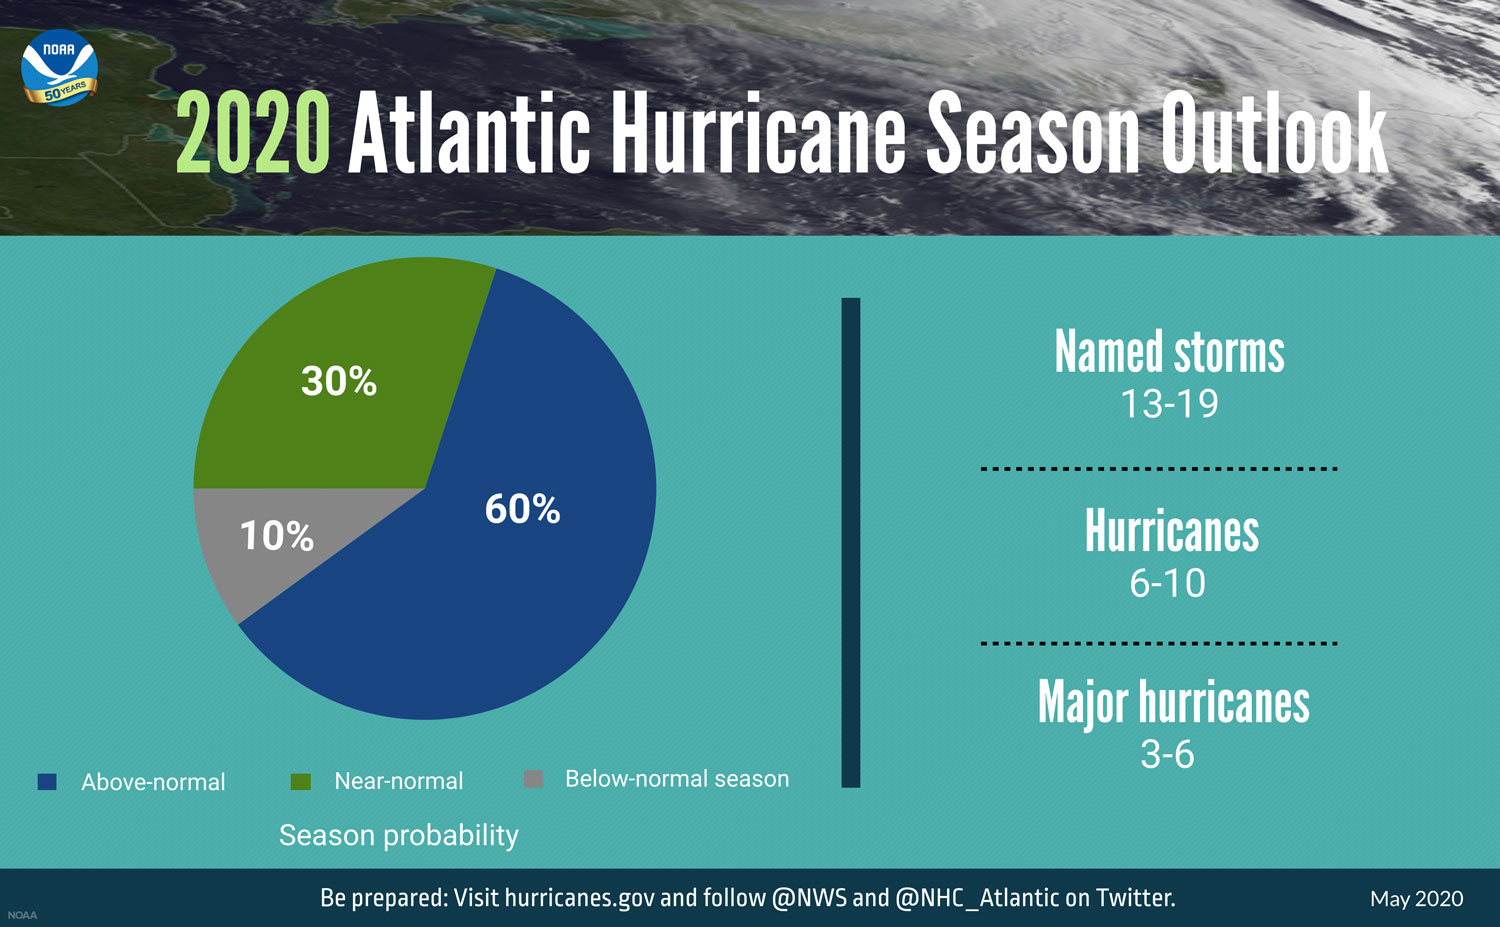 NOAA 2020 Atlantic Hurricane Season Outlook